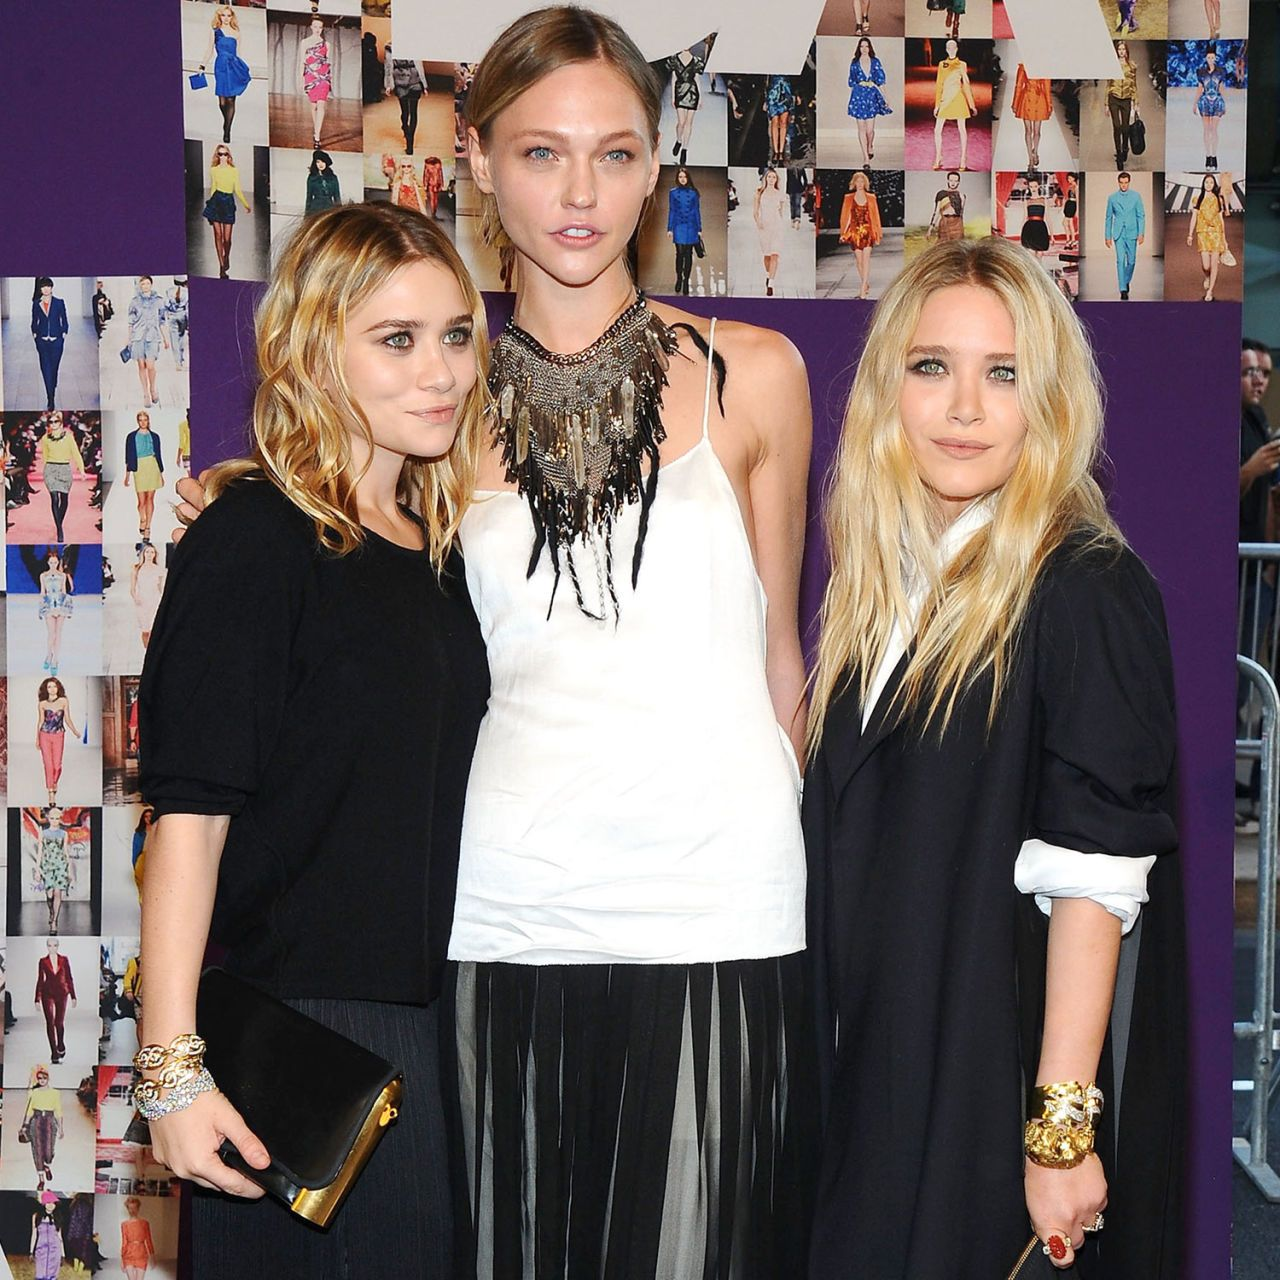 5 Rules for Being a Short Girl in Fashion